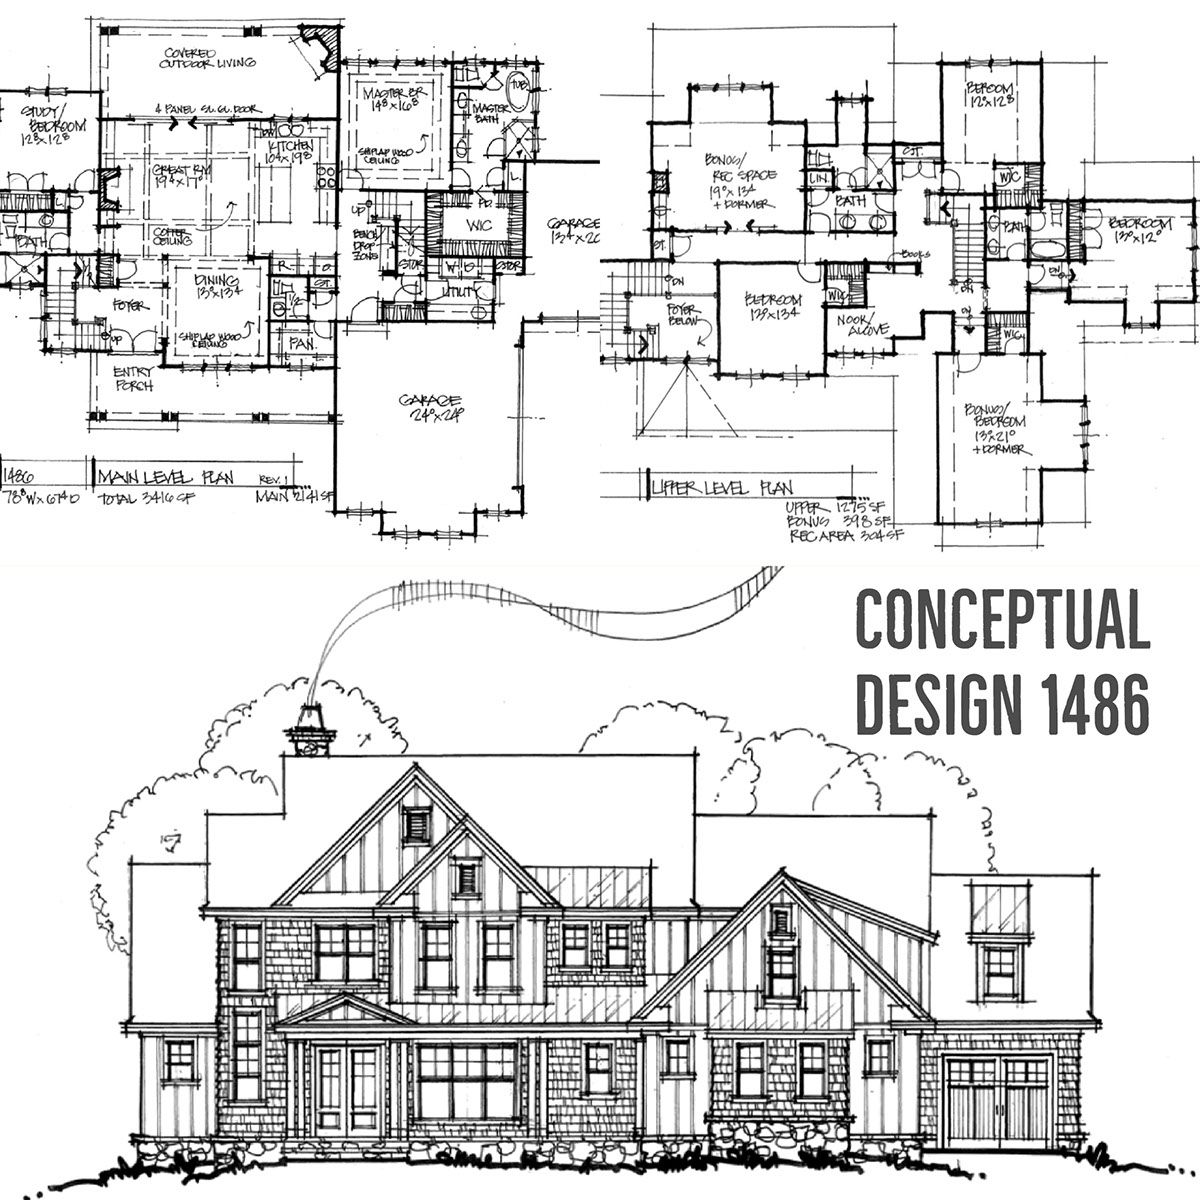 House Plan 1486: Modern Two-Story